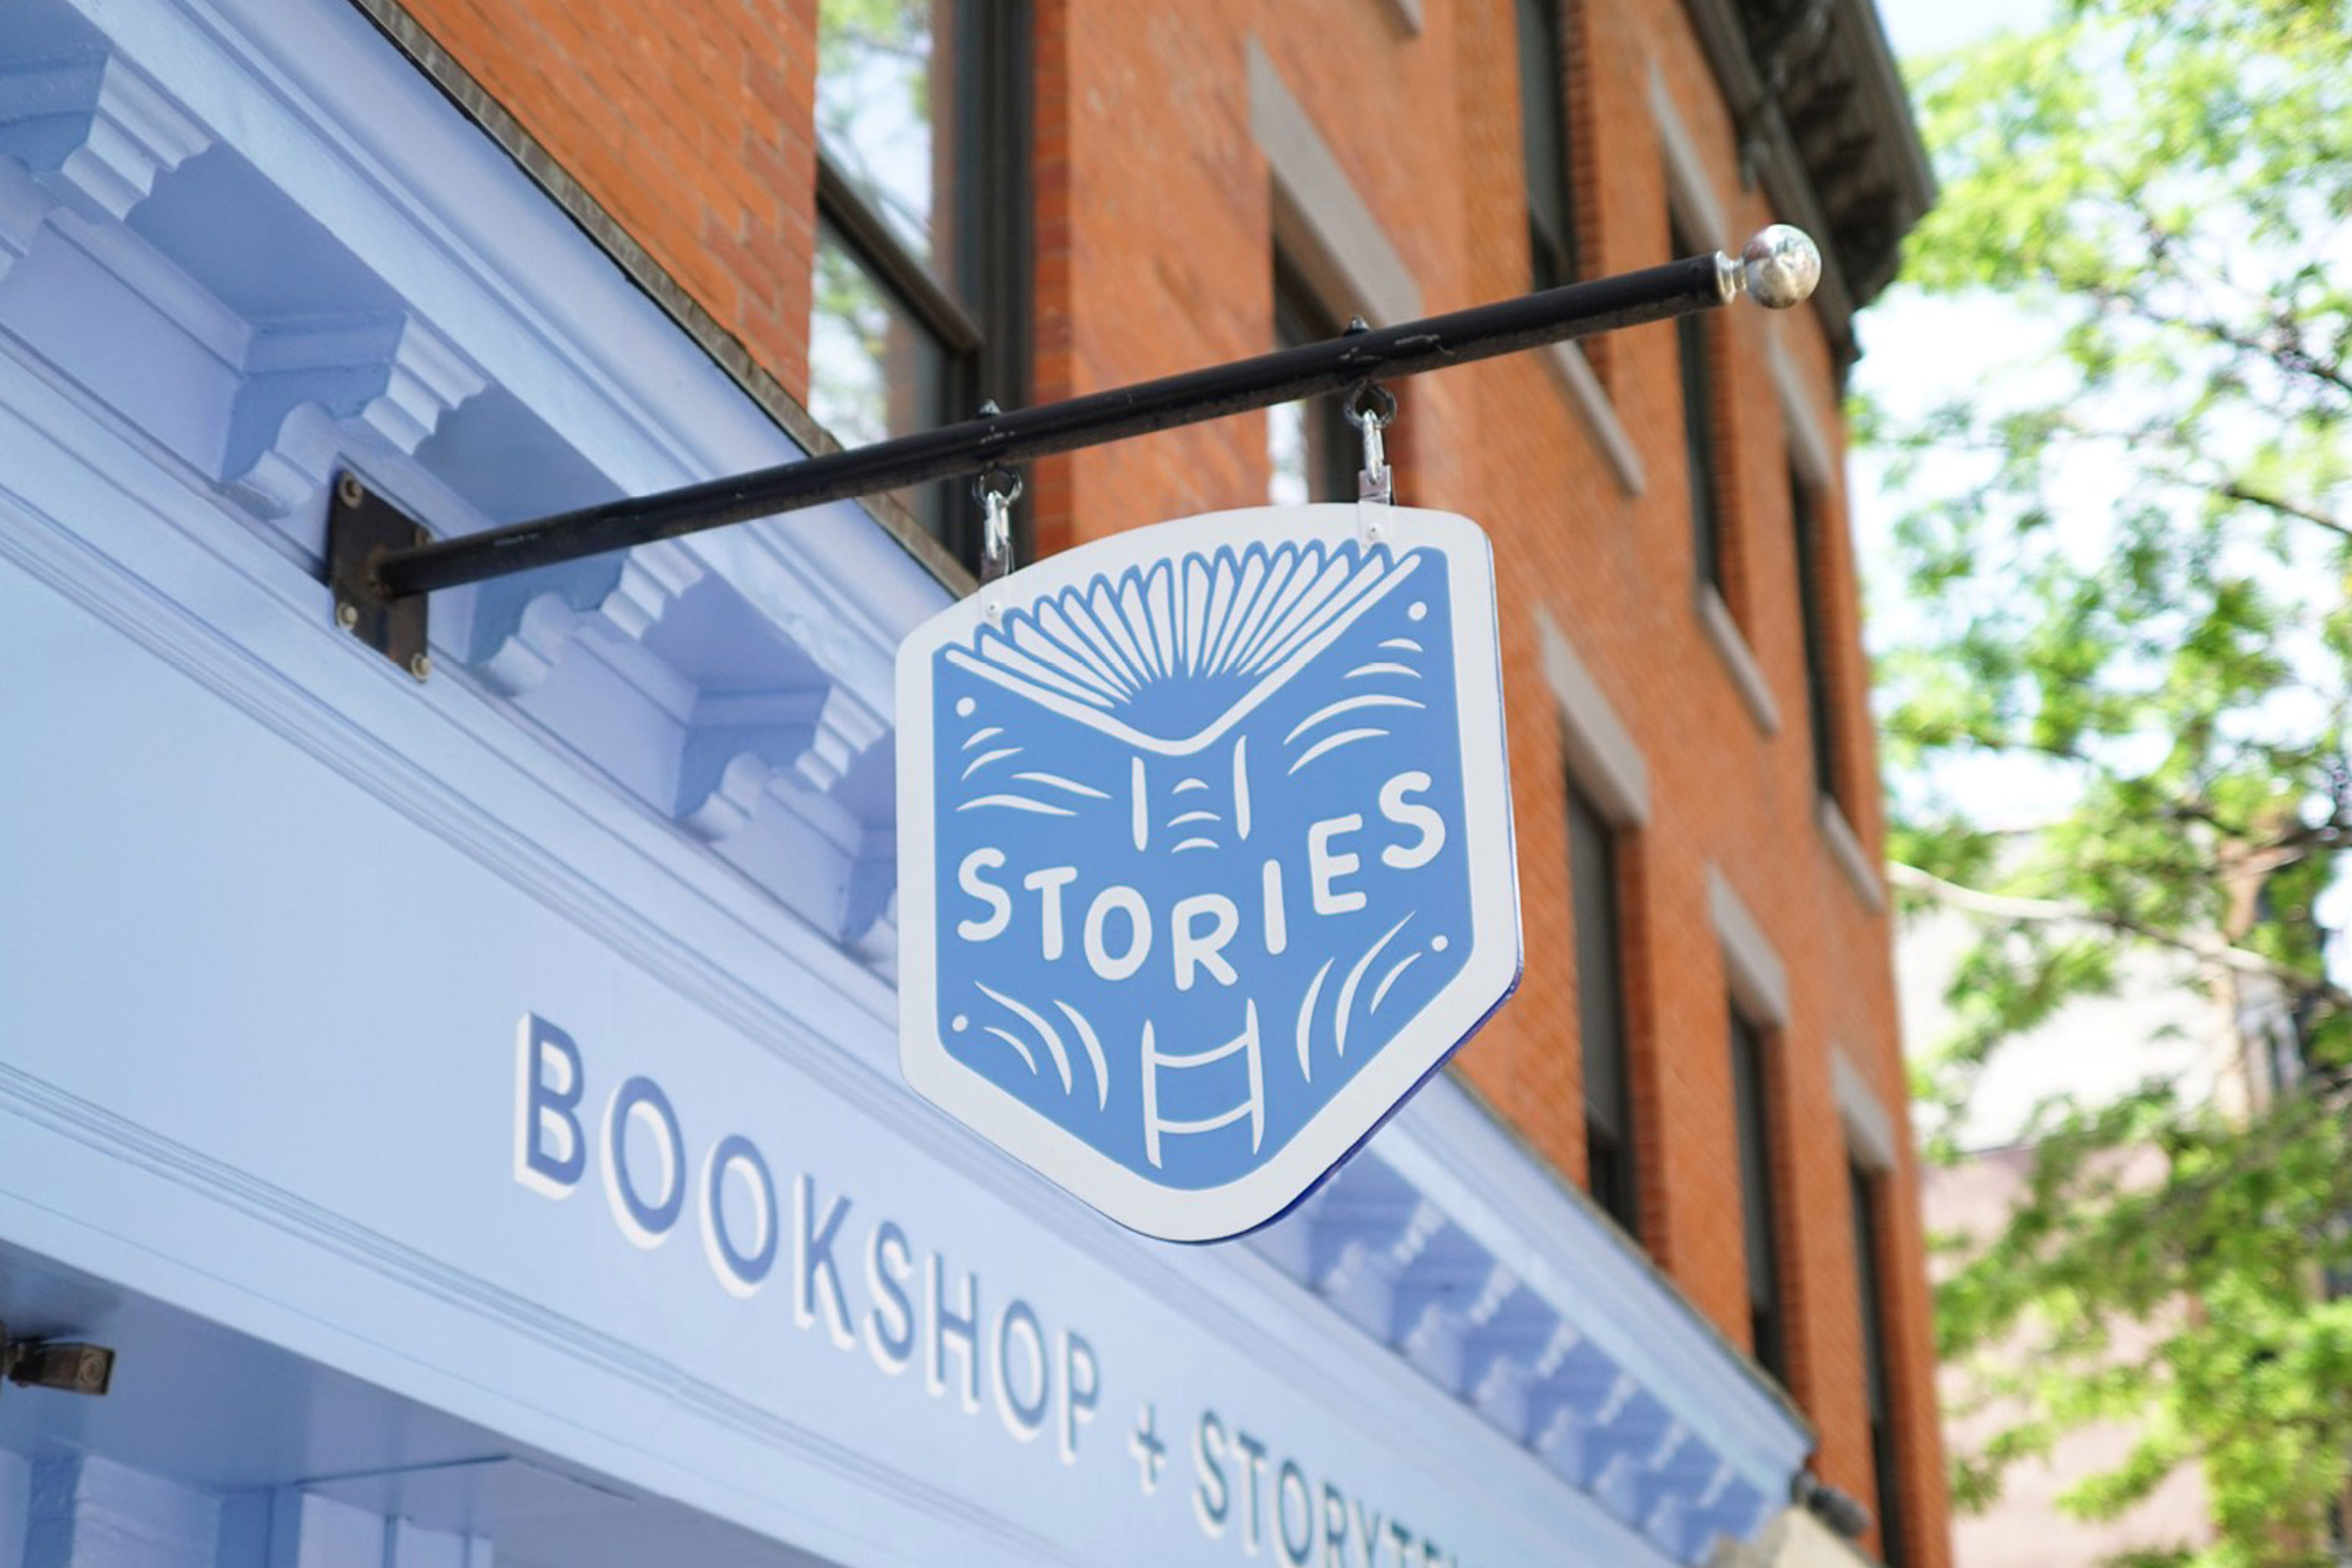 Stories Bookstore Exterior Sign